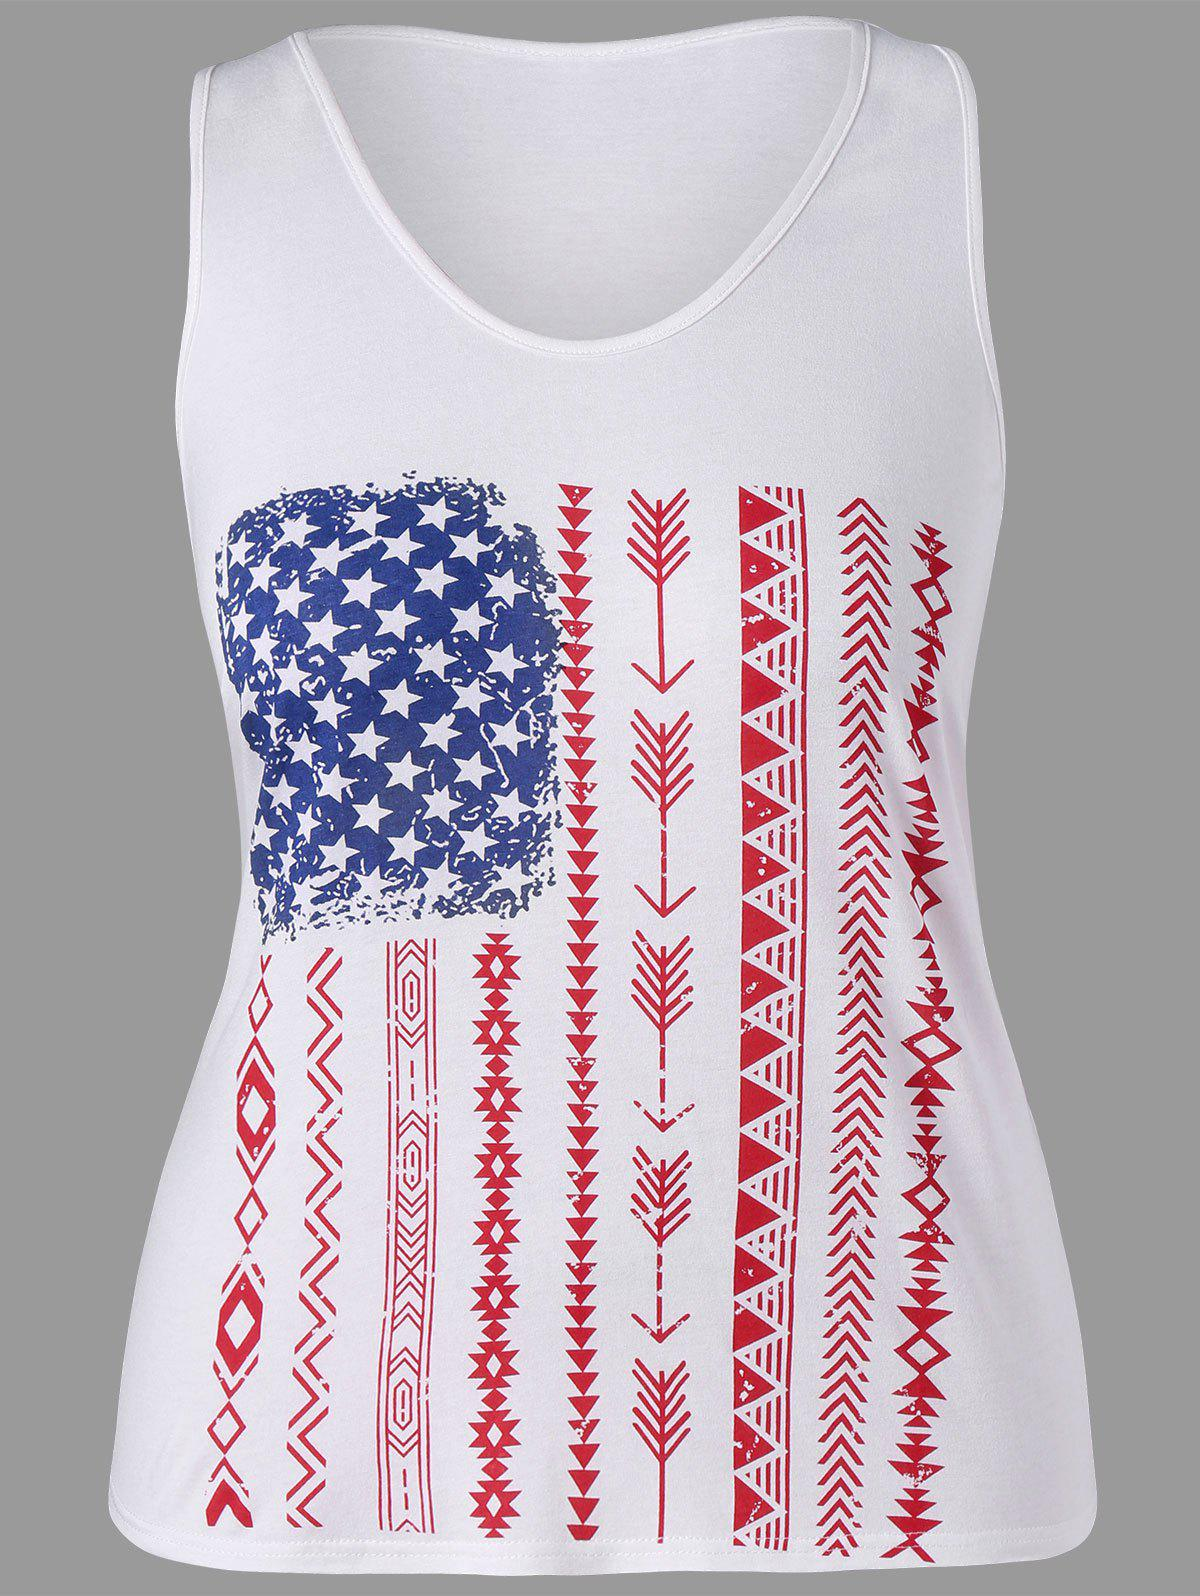 Fashion Graphic Plus Size Racerback Tank Top